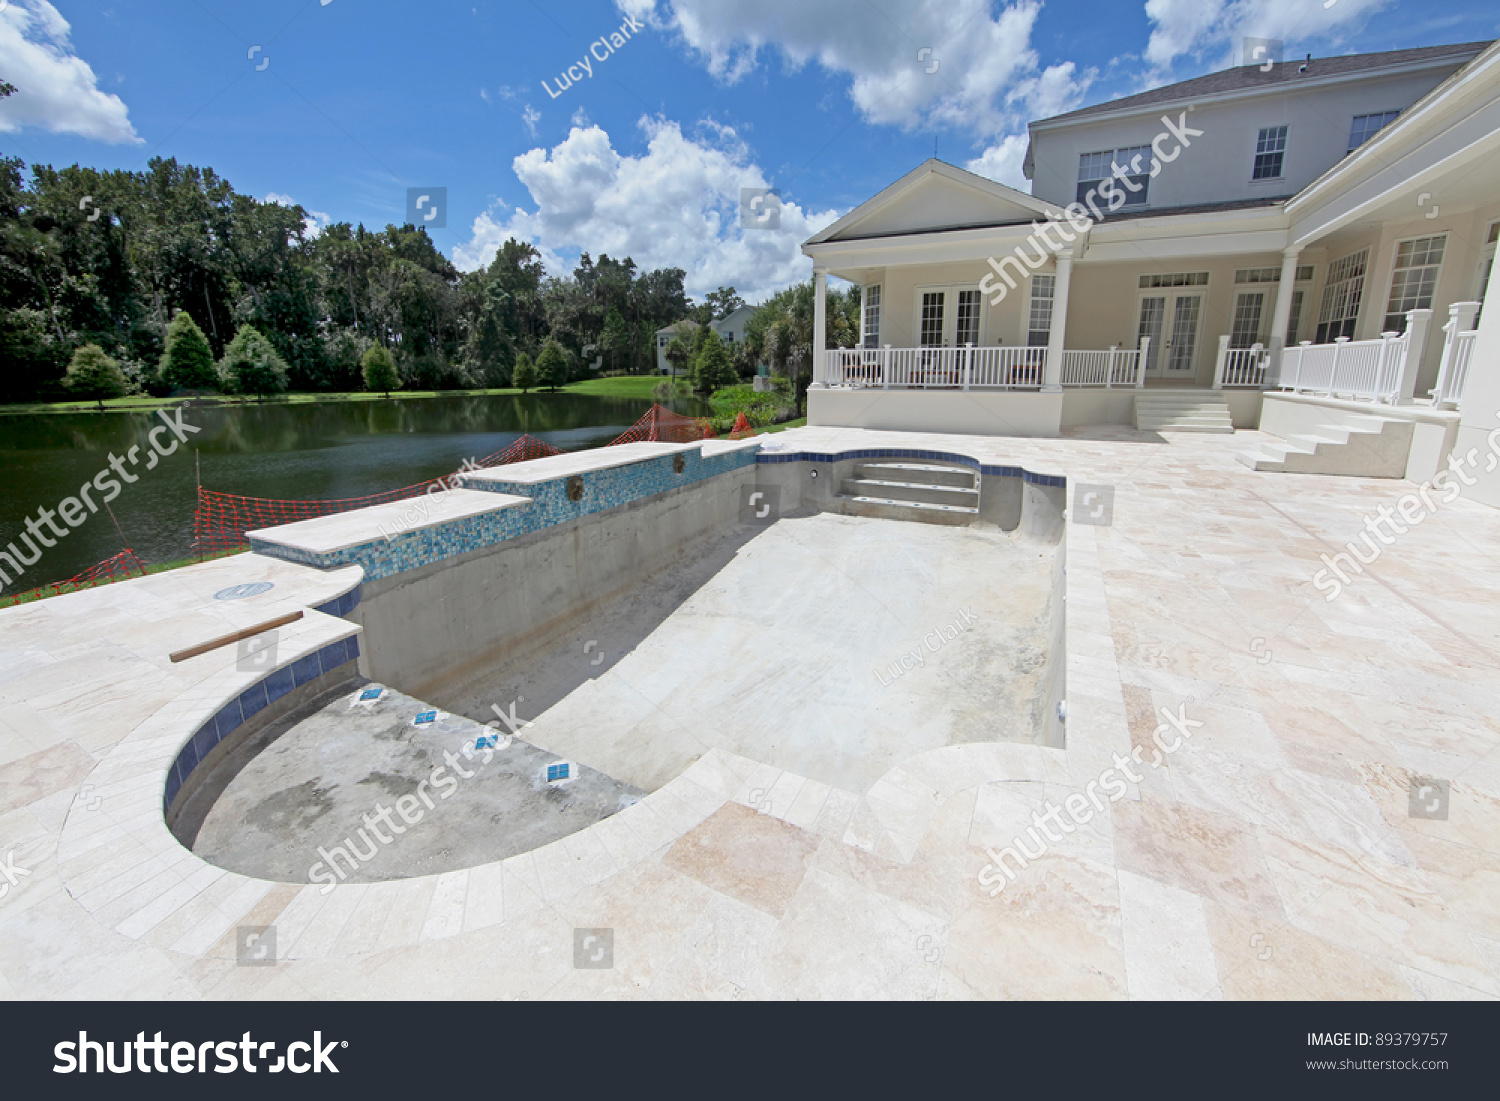 A Swimming Pool Under Construction In Florida Stock Photo 89379757 Shutterstock